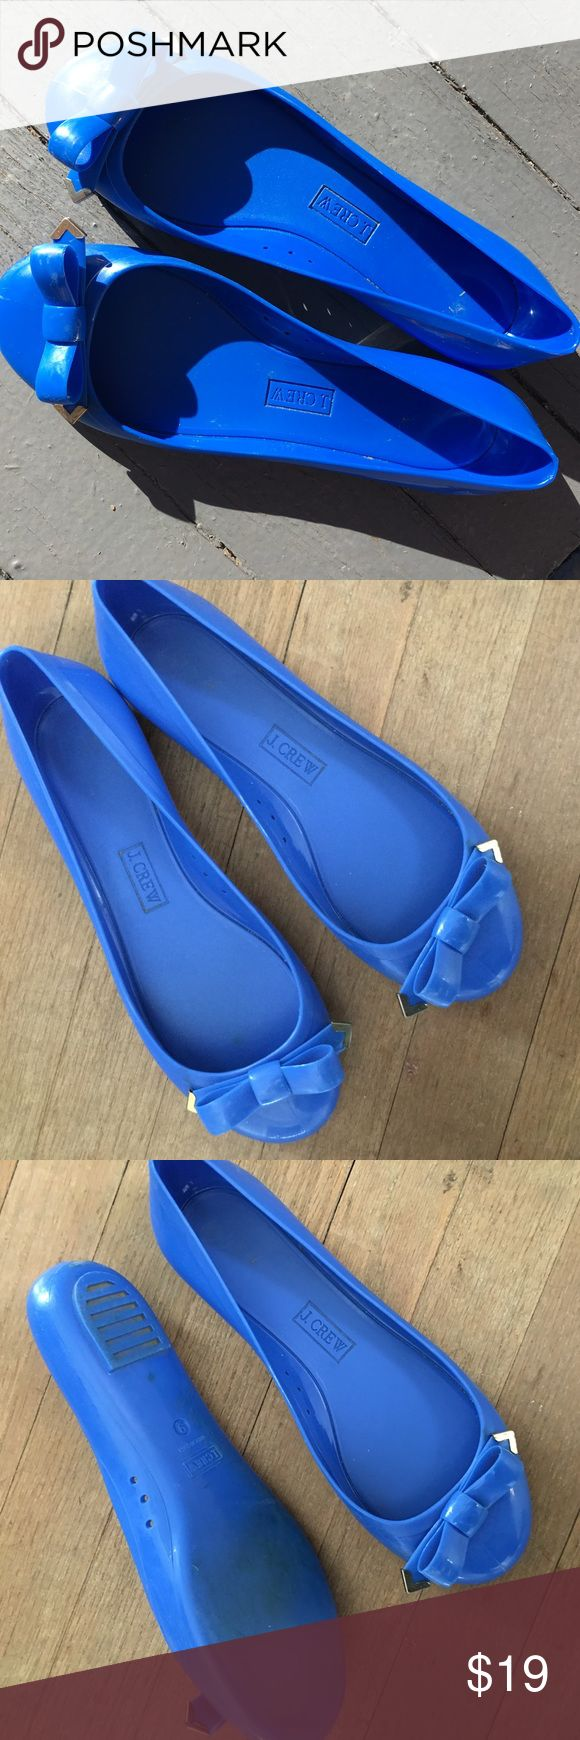 JCREW rain shoes Adorable blue flats- like rain boots but flats- so cute! Great used condition! These are great because they clean easily- I'd say best for an 8.5-9 . I'm a 9 and they fit but because you wear them when they are raining, I just think it'd be best if they were a little looser J. Crew Shoes Winter & Rain Boots